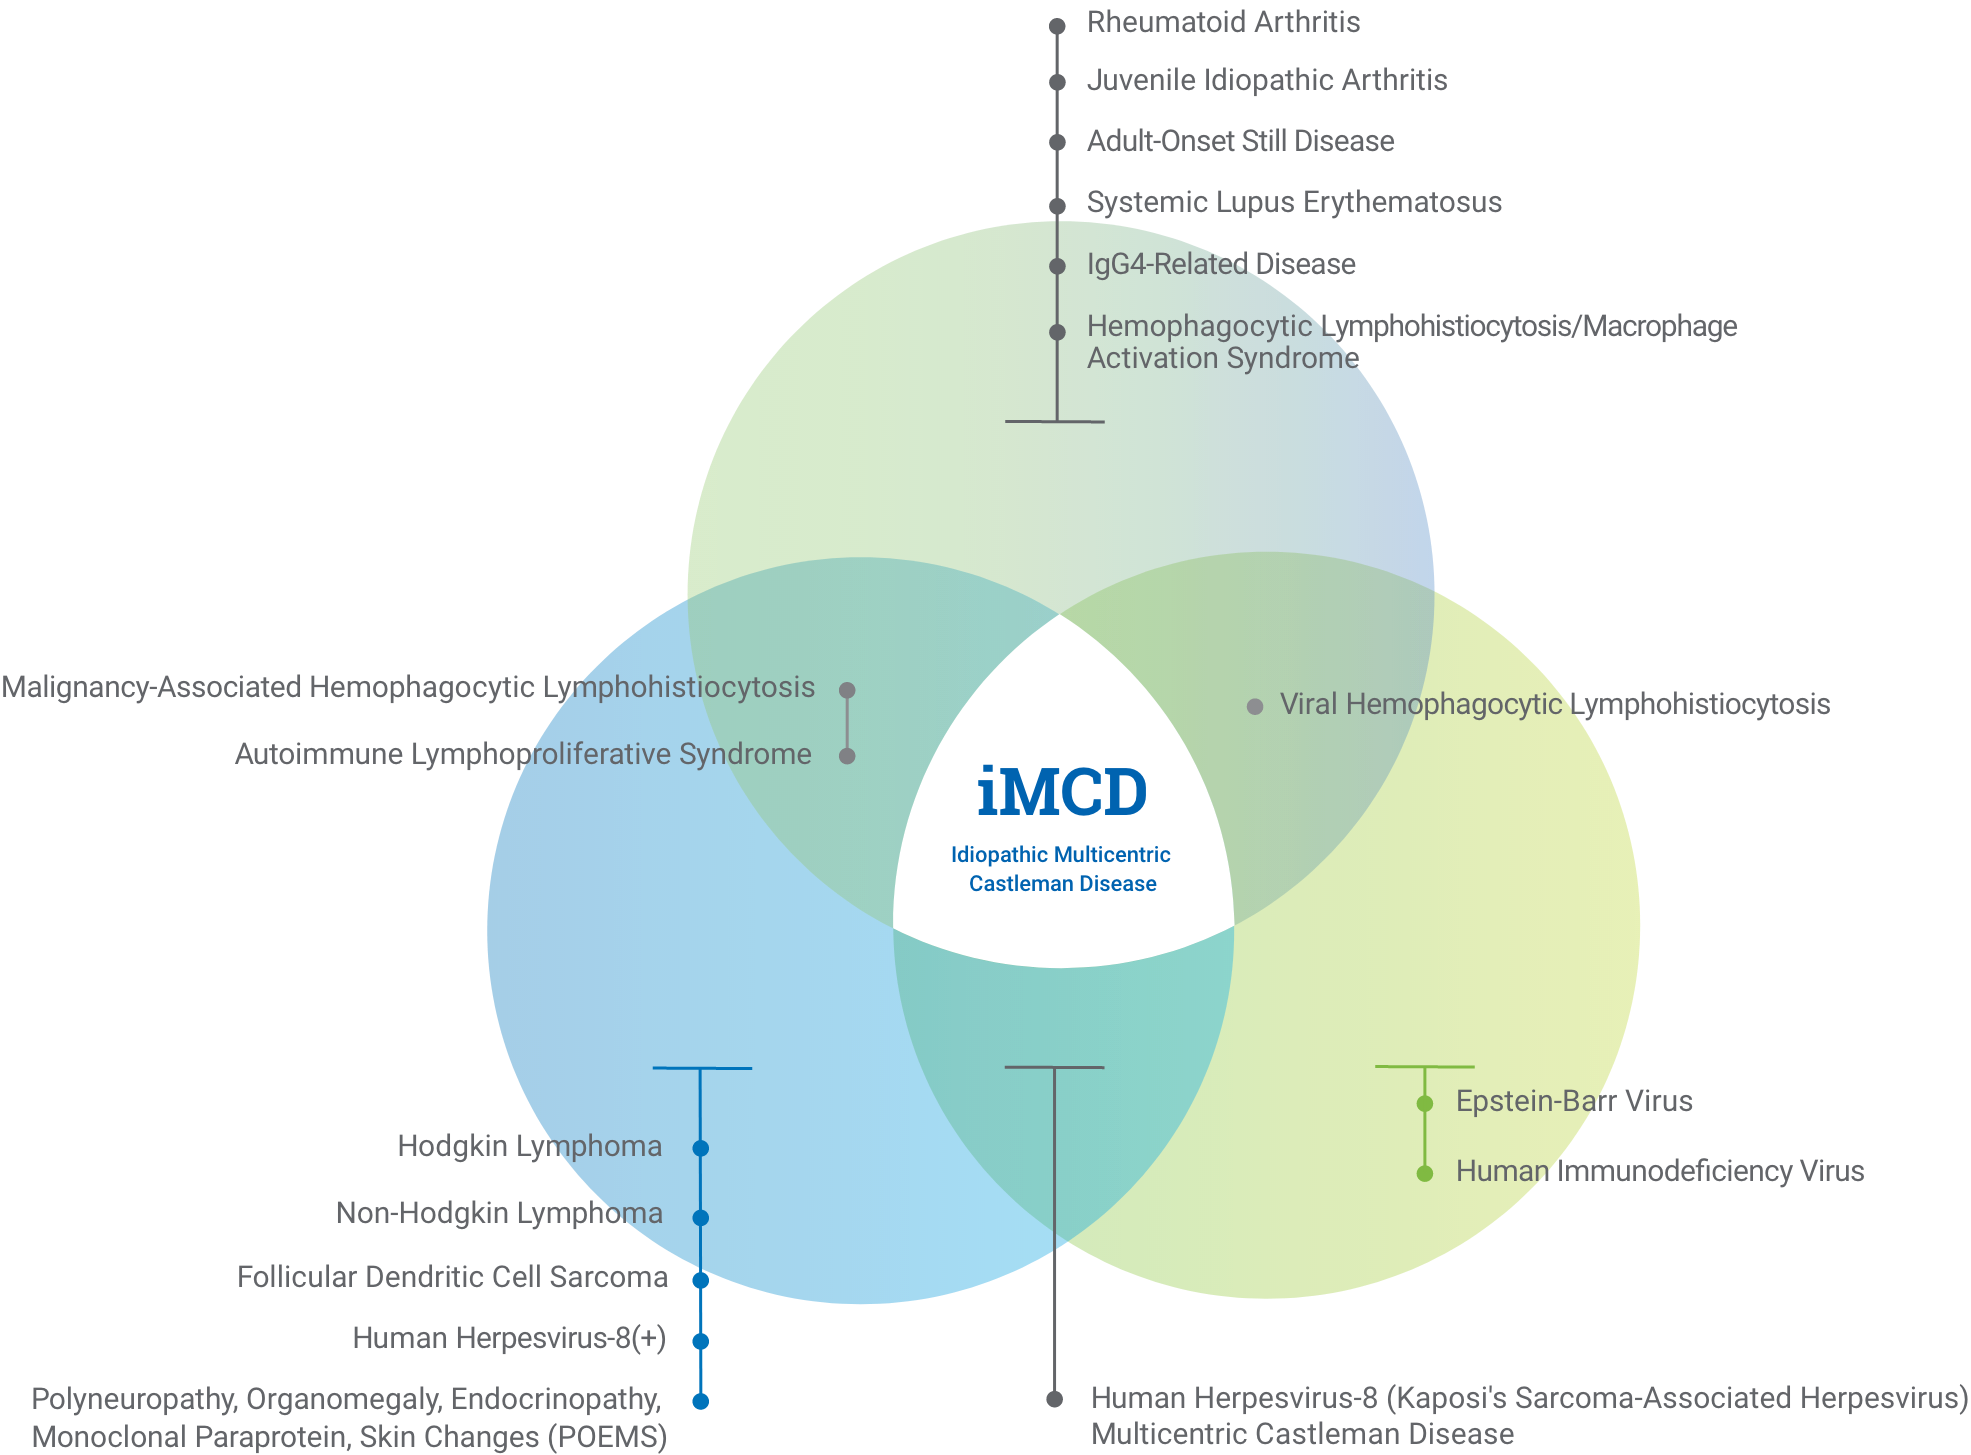 Venn diagram explaining how idiopathic multicentric Castleman disease, or iMCD, can be confused for autoimmune conditions, infections, and malignancies. Expanded state.